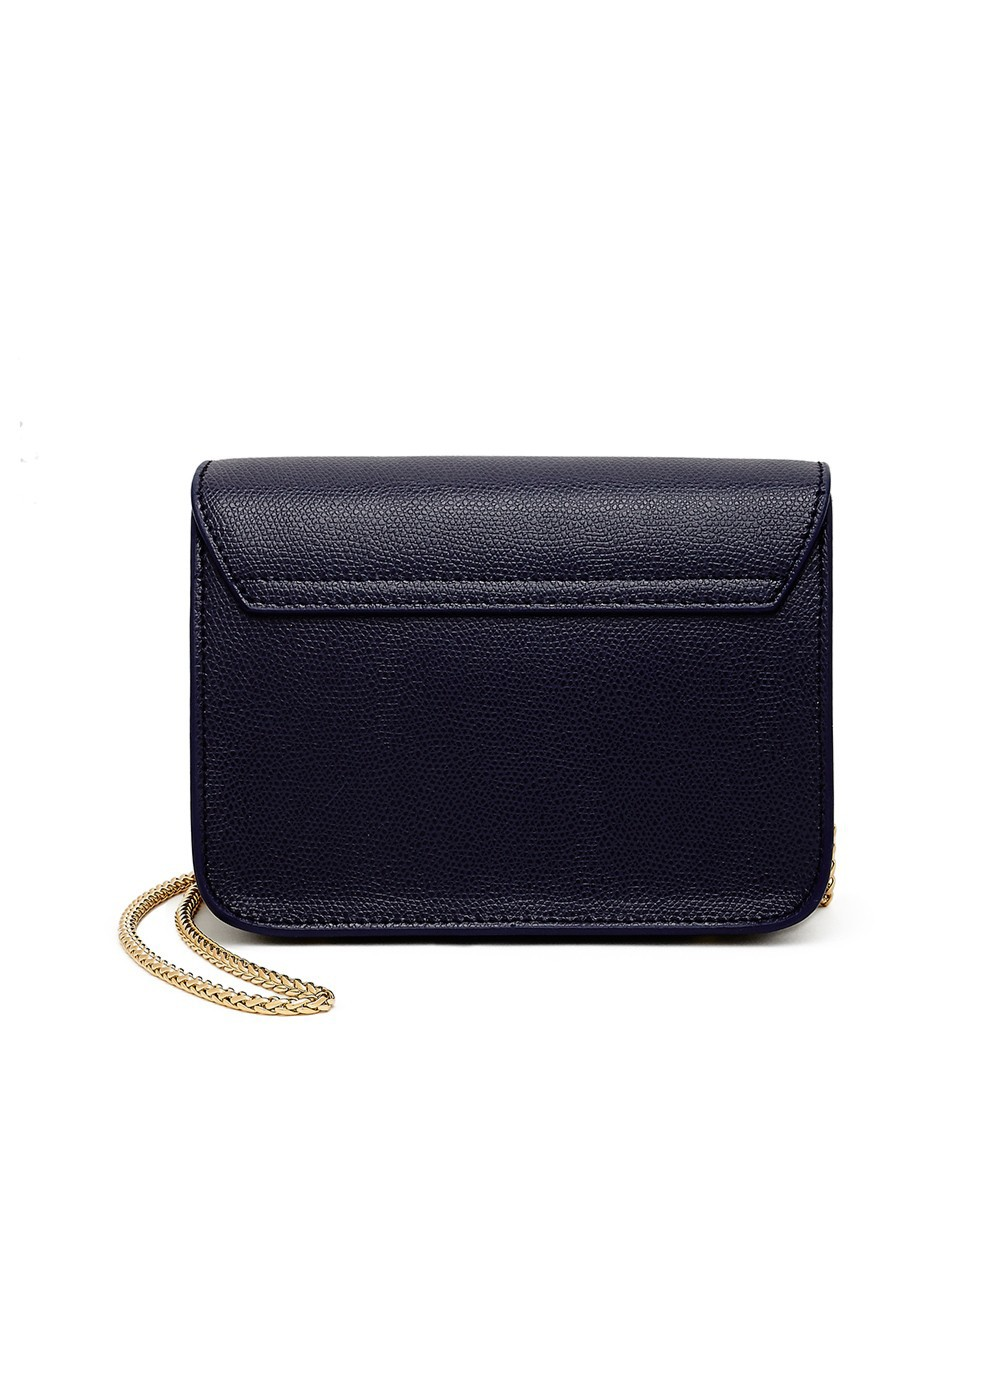 【最大50%OFF】METROPOLIS MINI CROSSBODY|NAVY|ショルダーバッグ|FURLA(U)